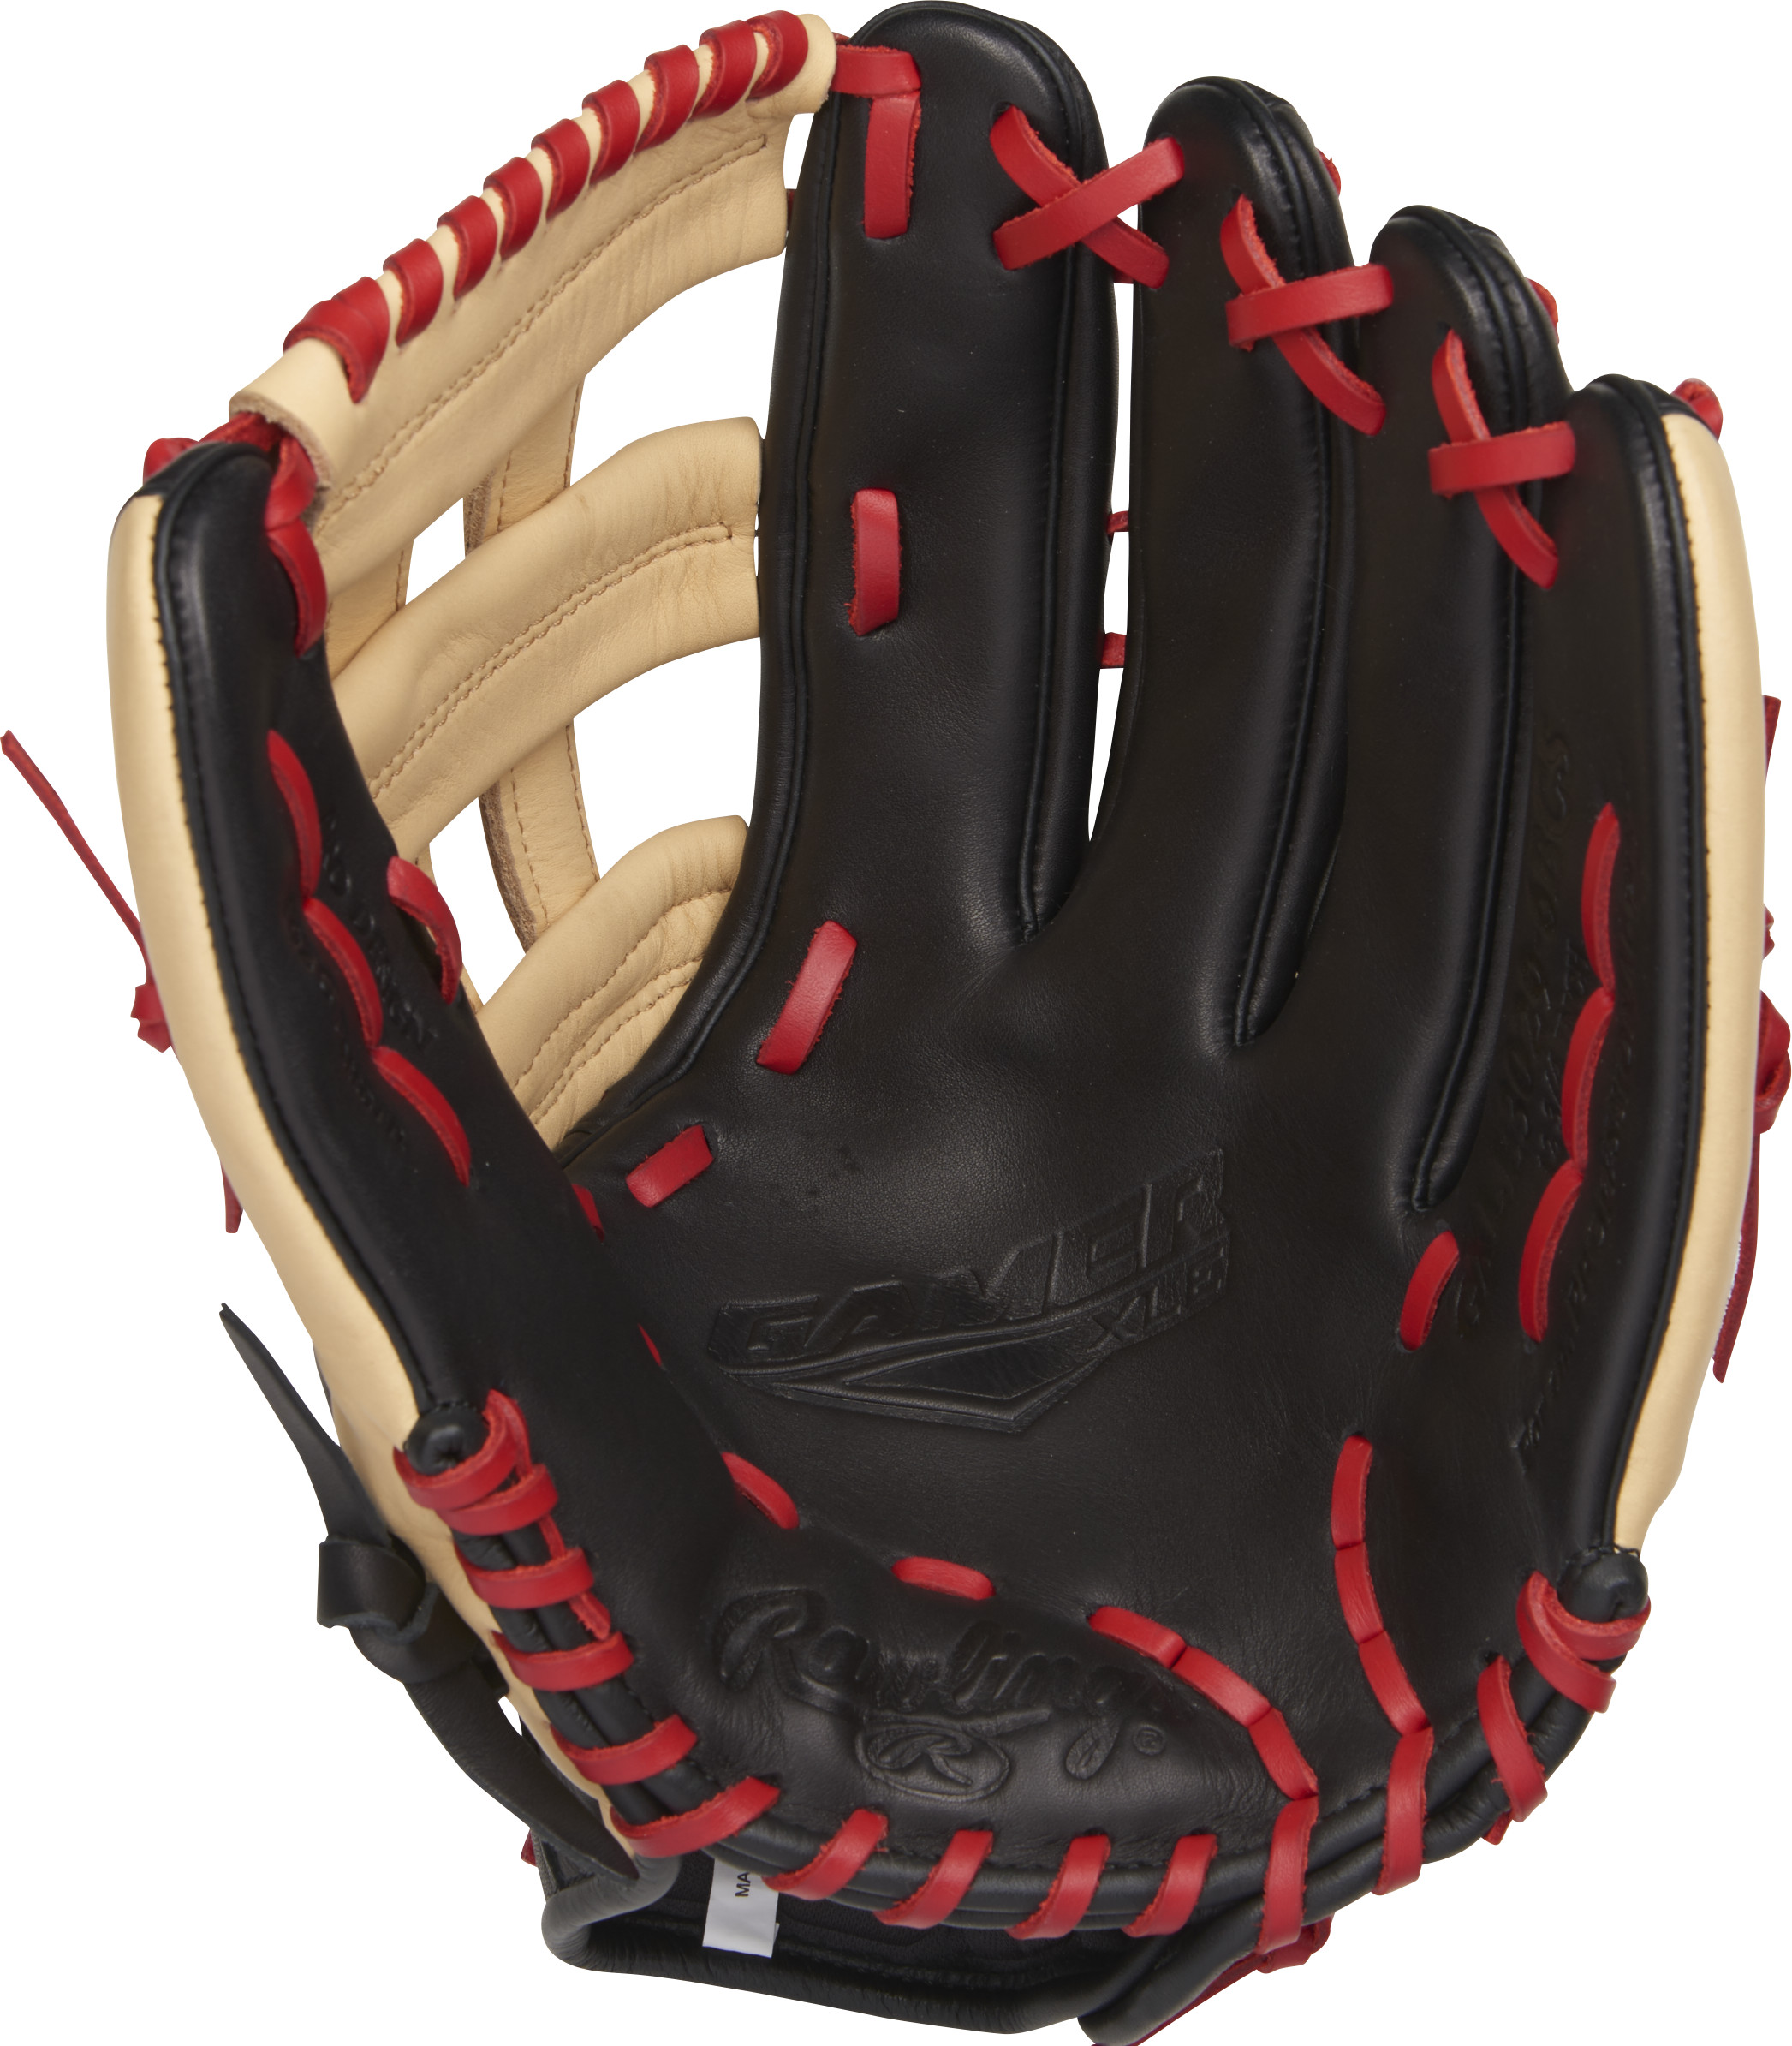 http://www.bestbatdeals.com/images/gloves/rawlings/GXLE3029-6BCS-1.jpg